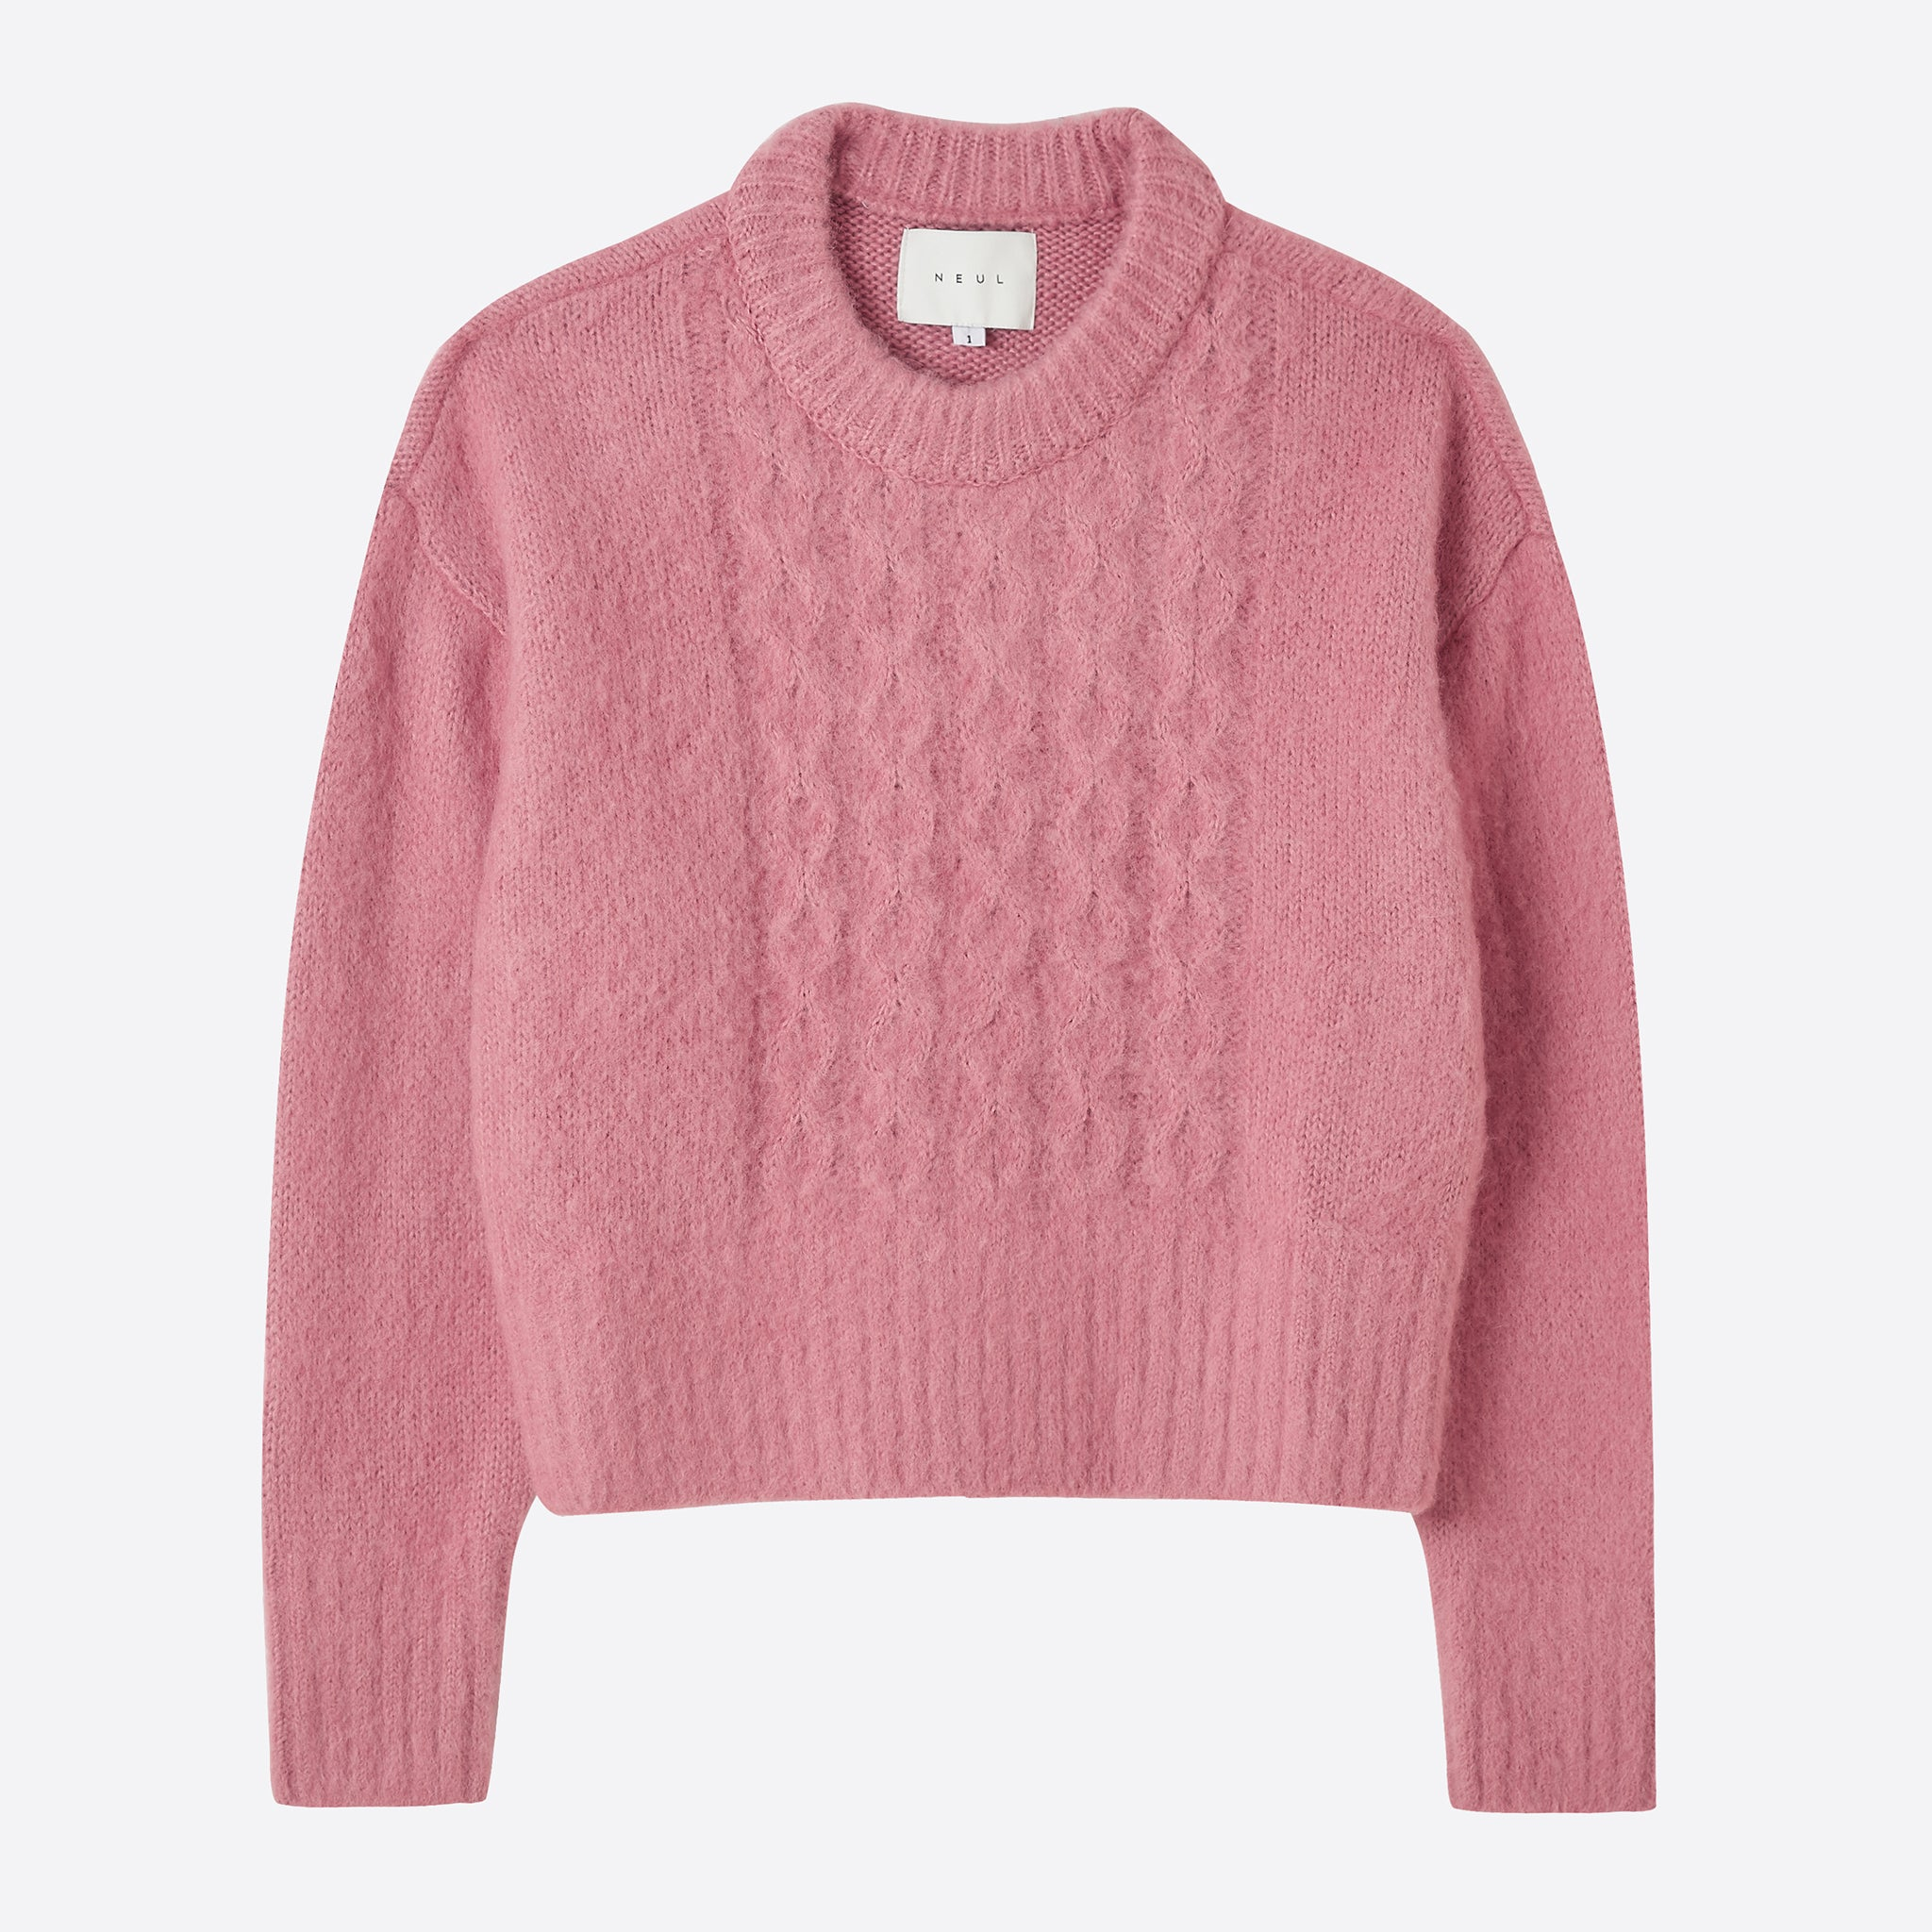 Neul Cable Knitted Brushed Sweater in Coral Almond